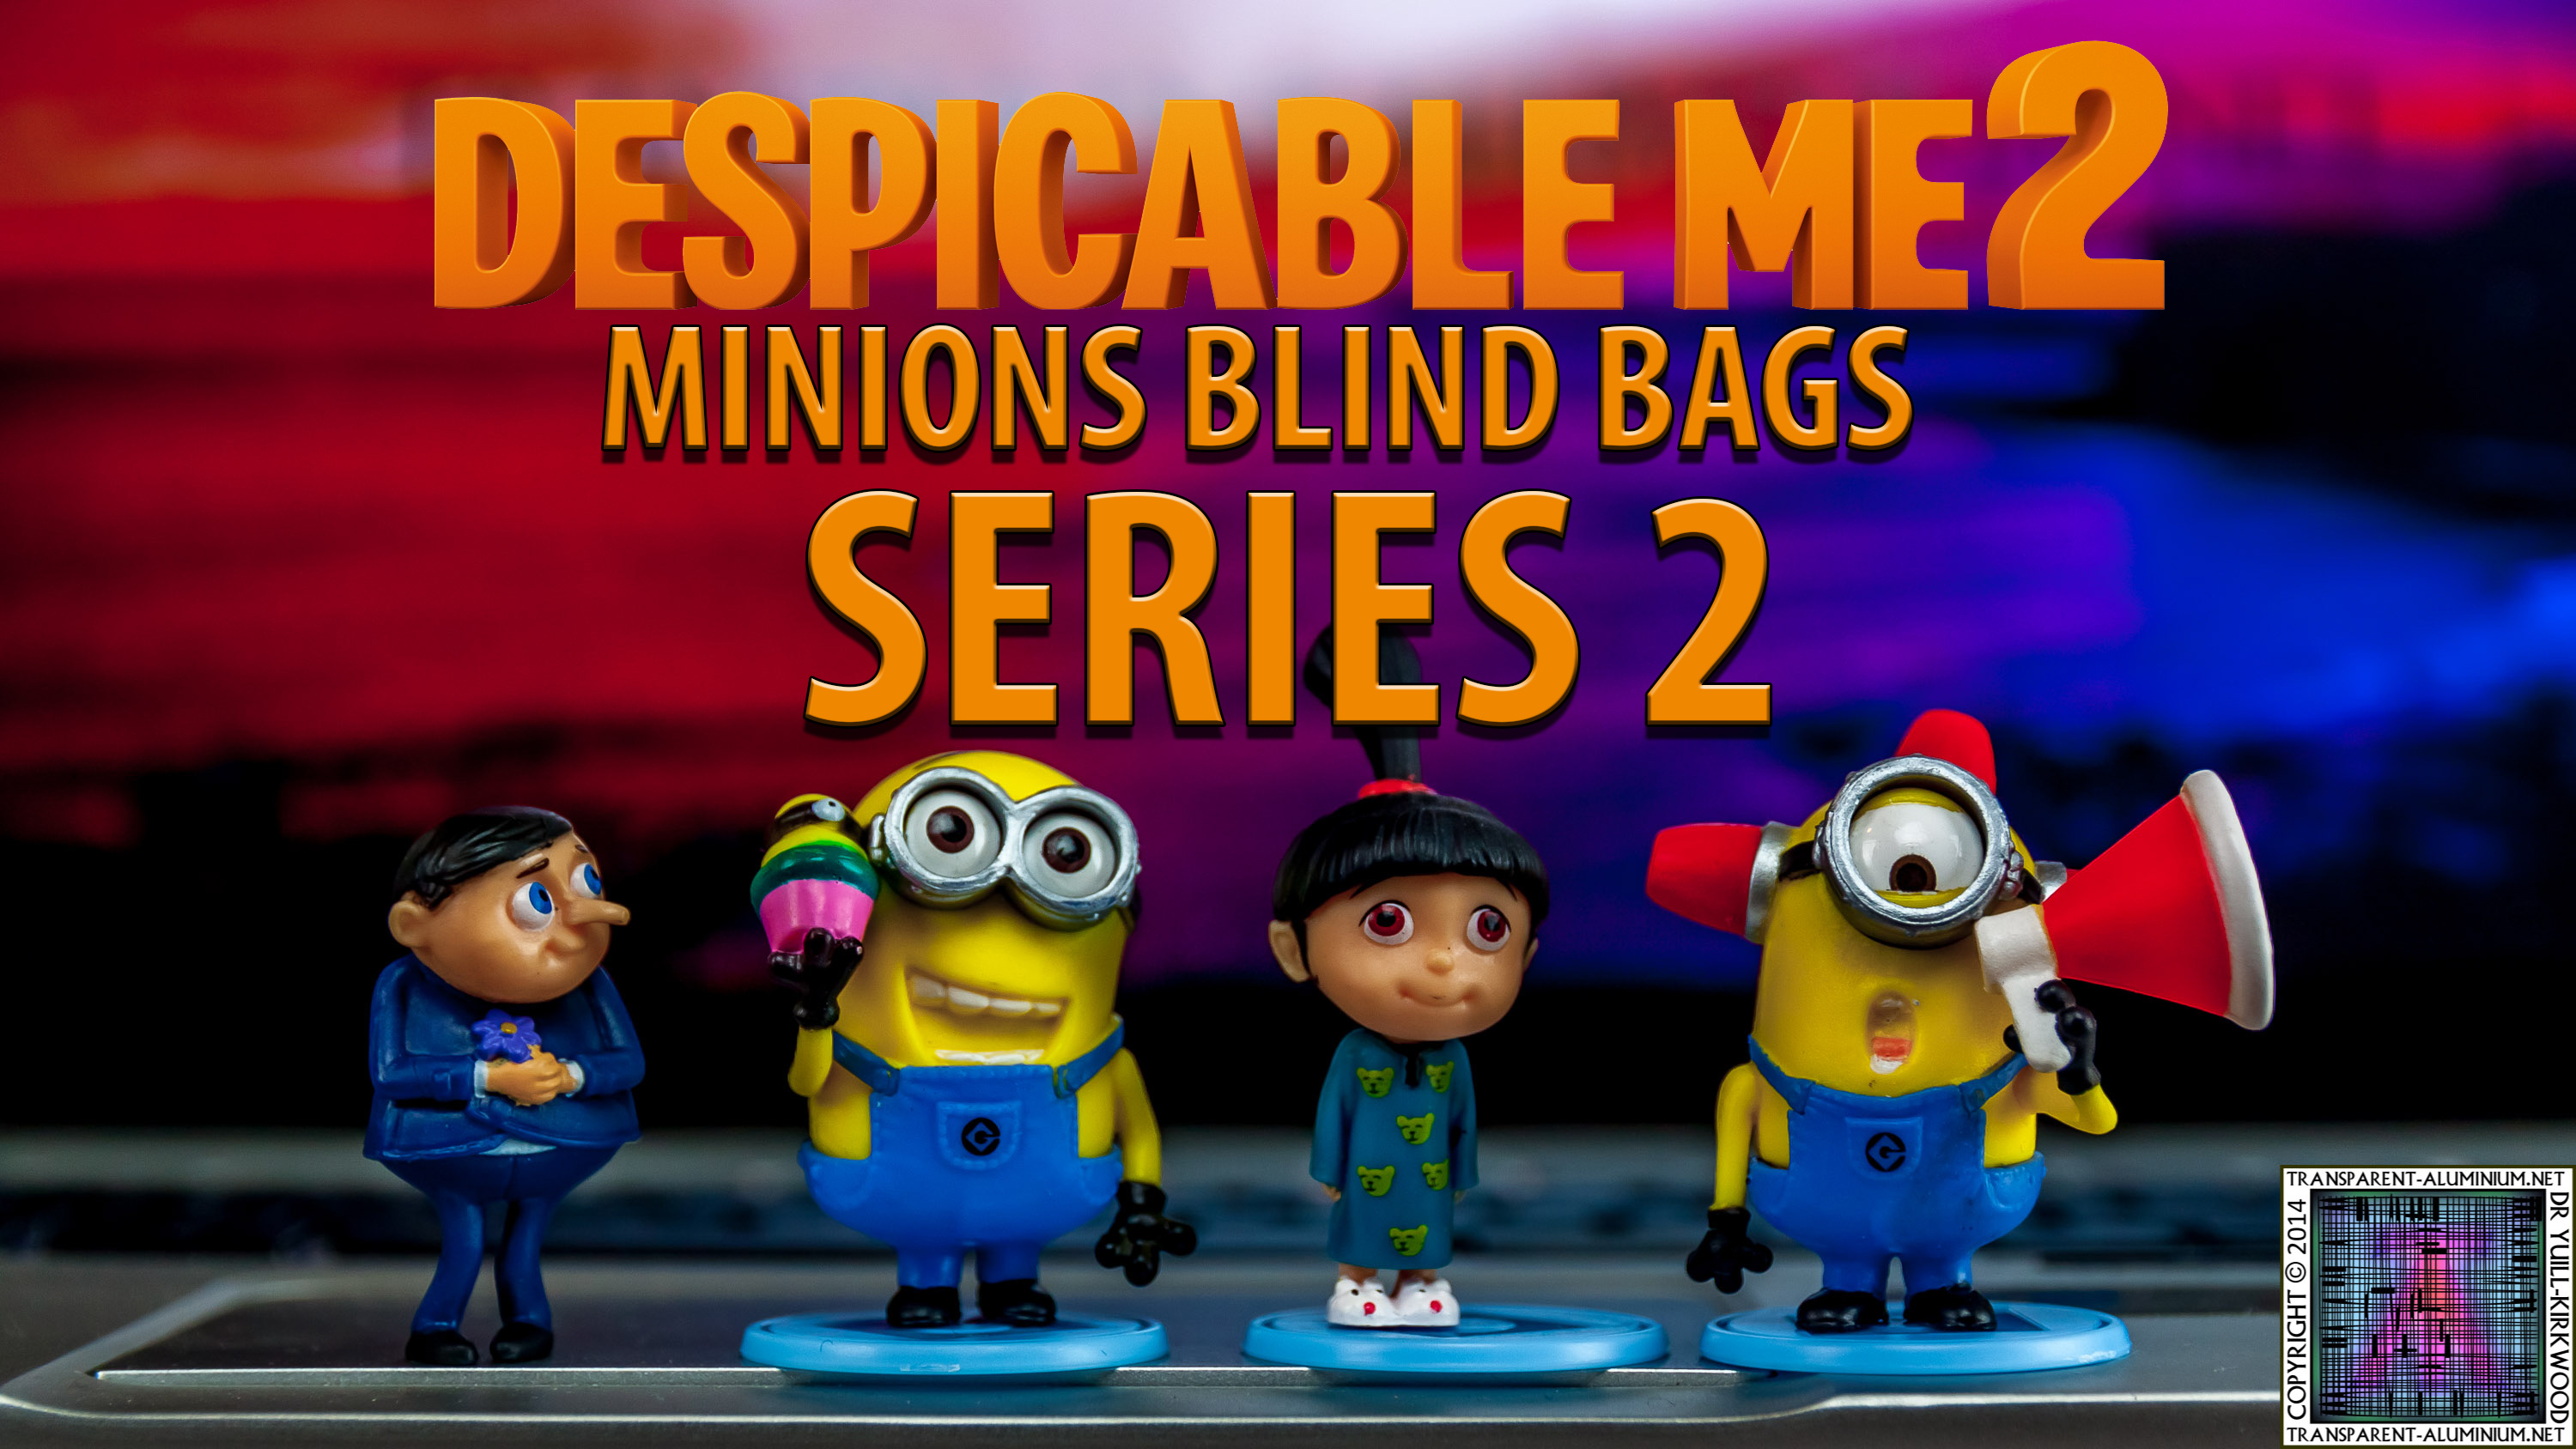 Despicable Me 2 Minions Blind Bags Series 2